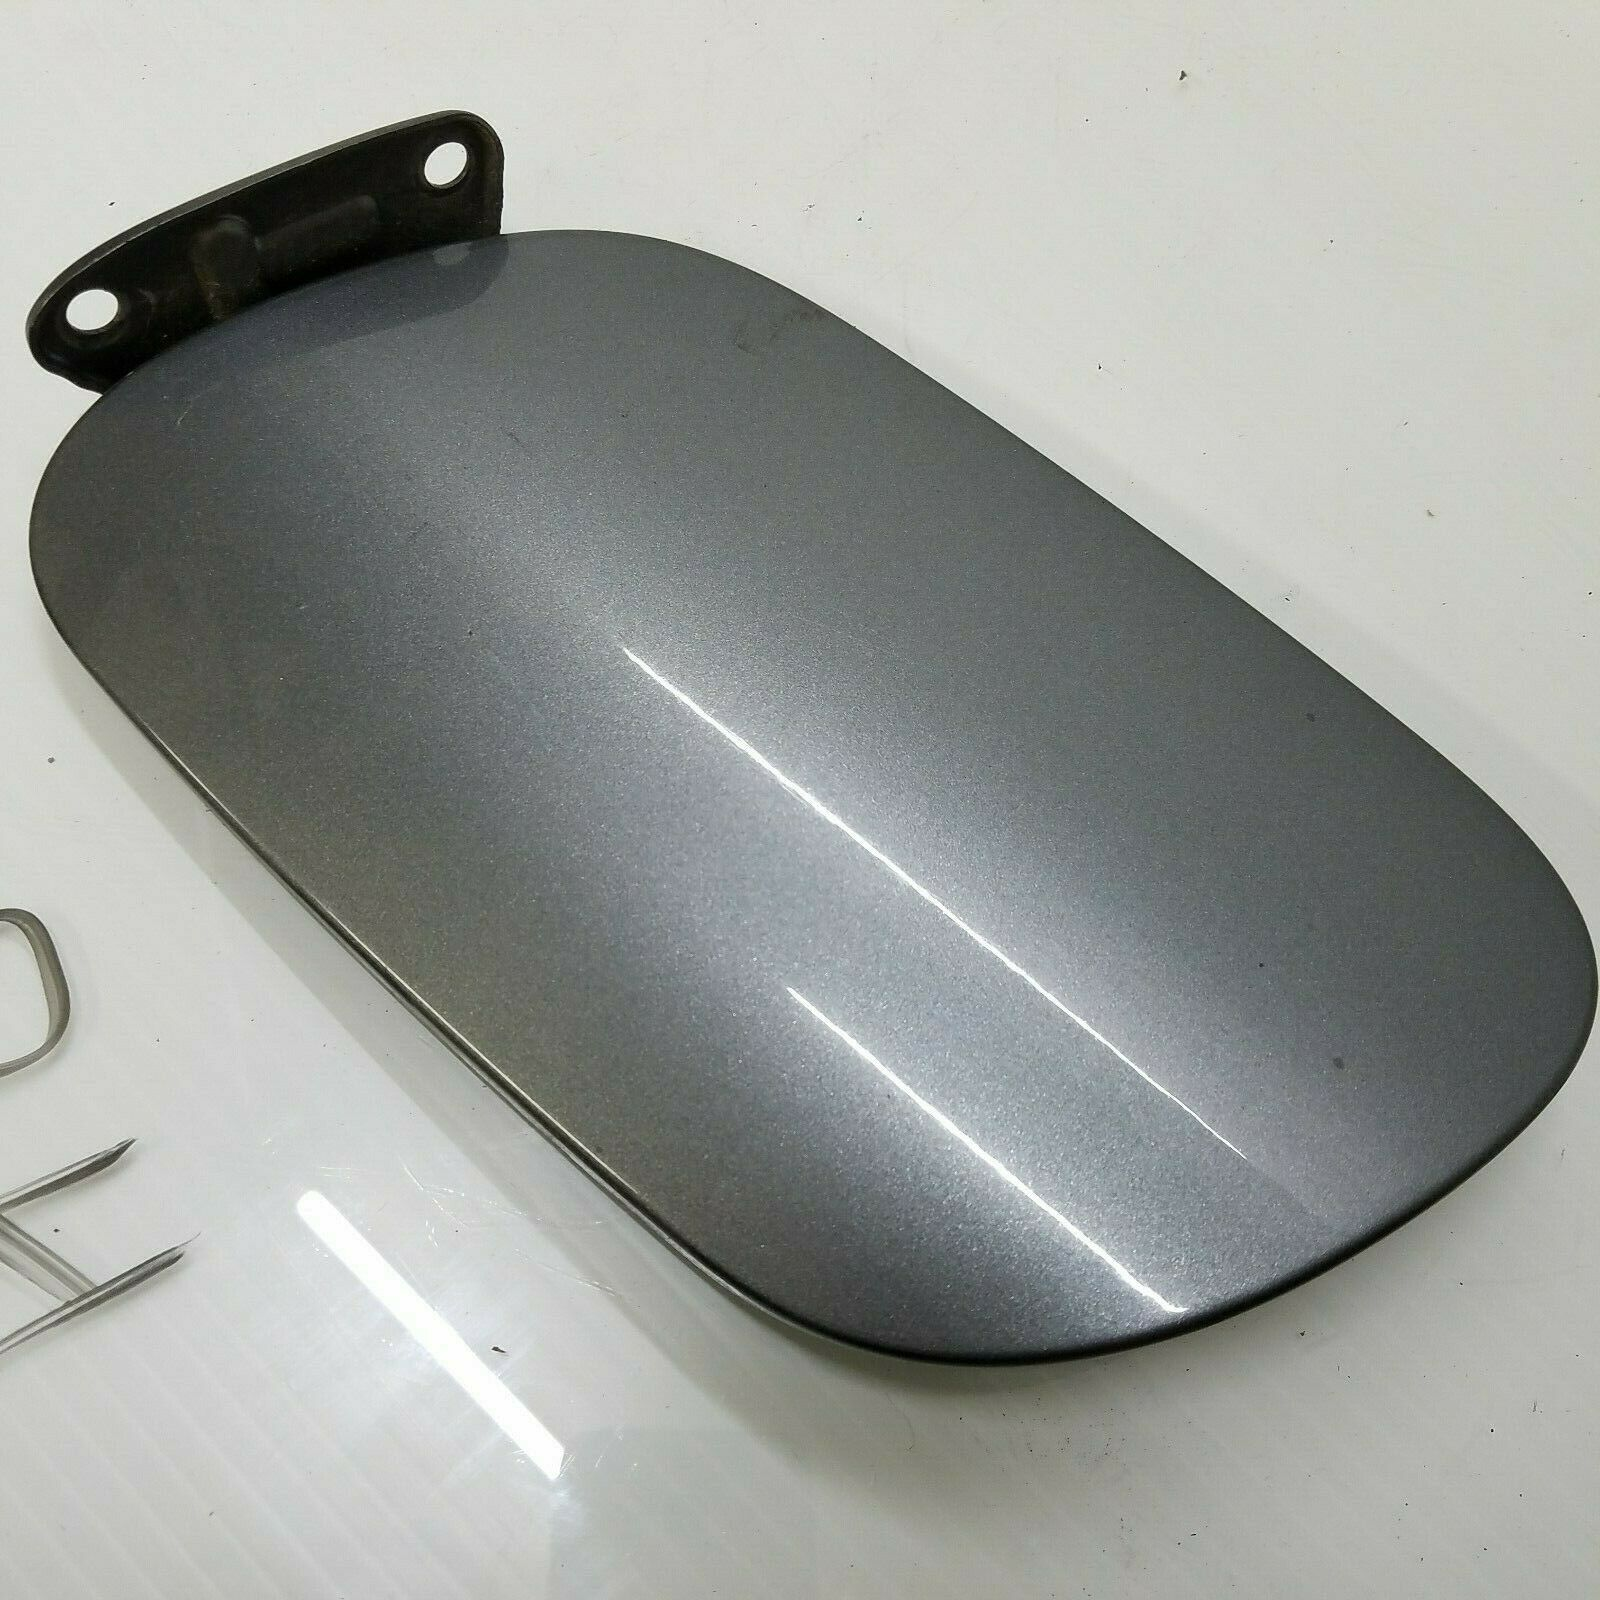 2003-2006 PORSCHE CAYENNE GAS FUEL FILLER TANK LID DOOR COVER GRAY OEM 7L5809905 Does not apply Po4Cay